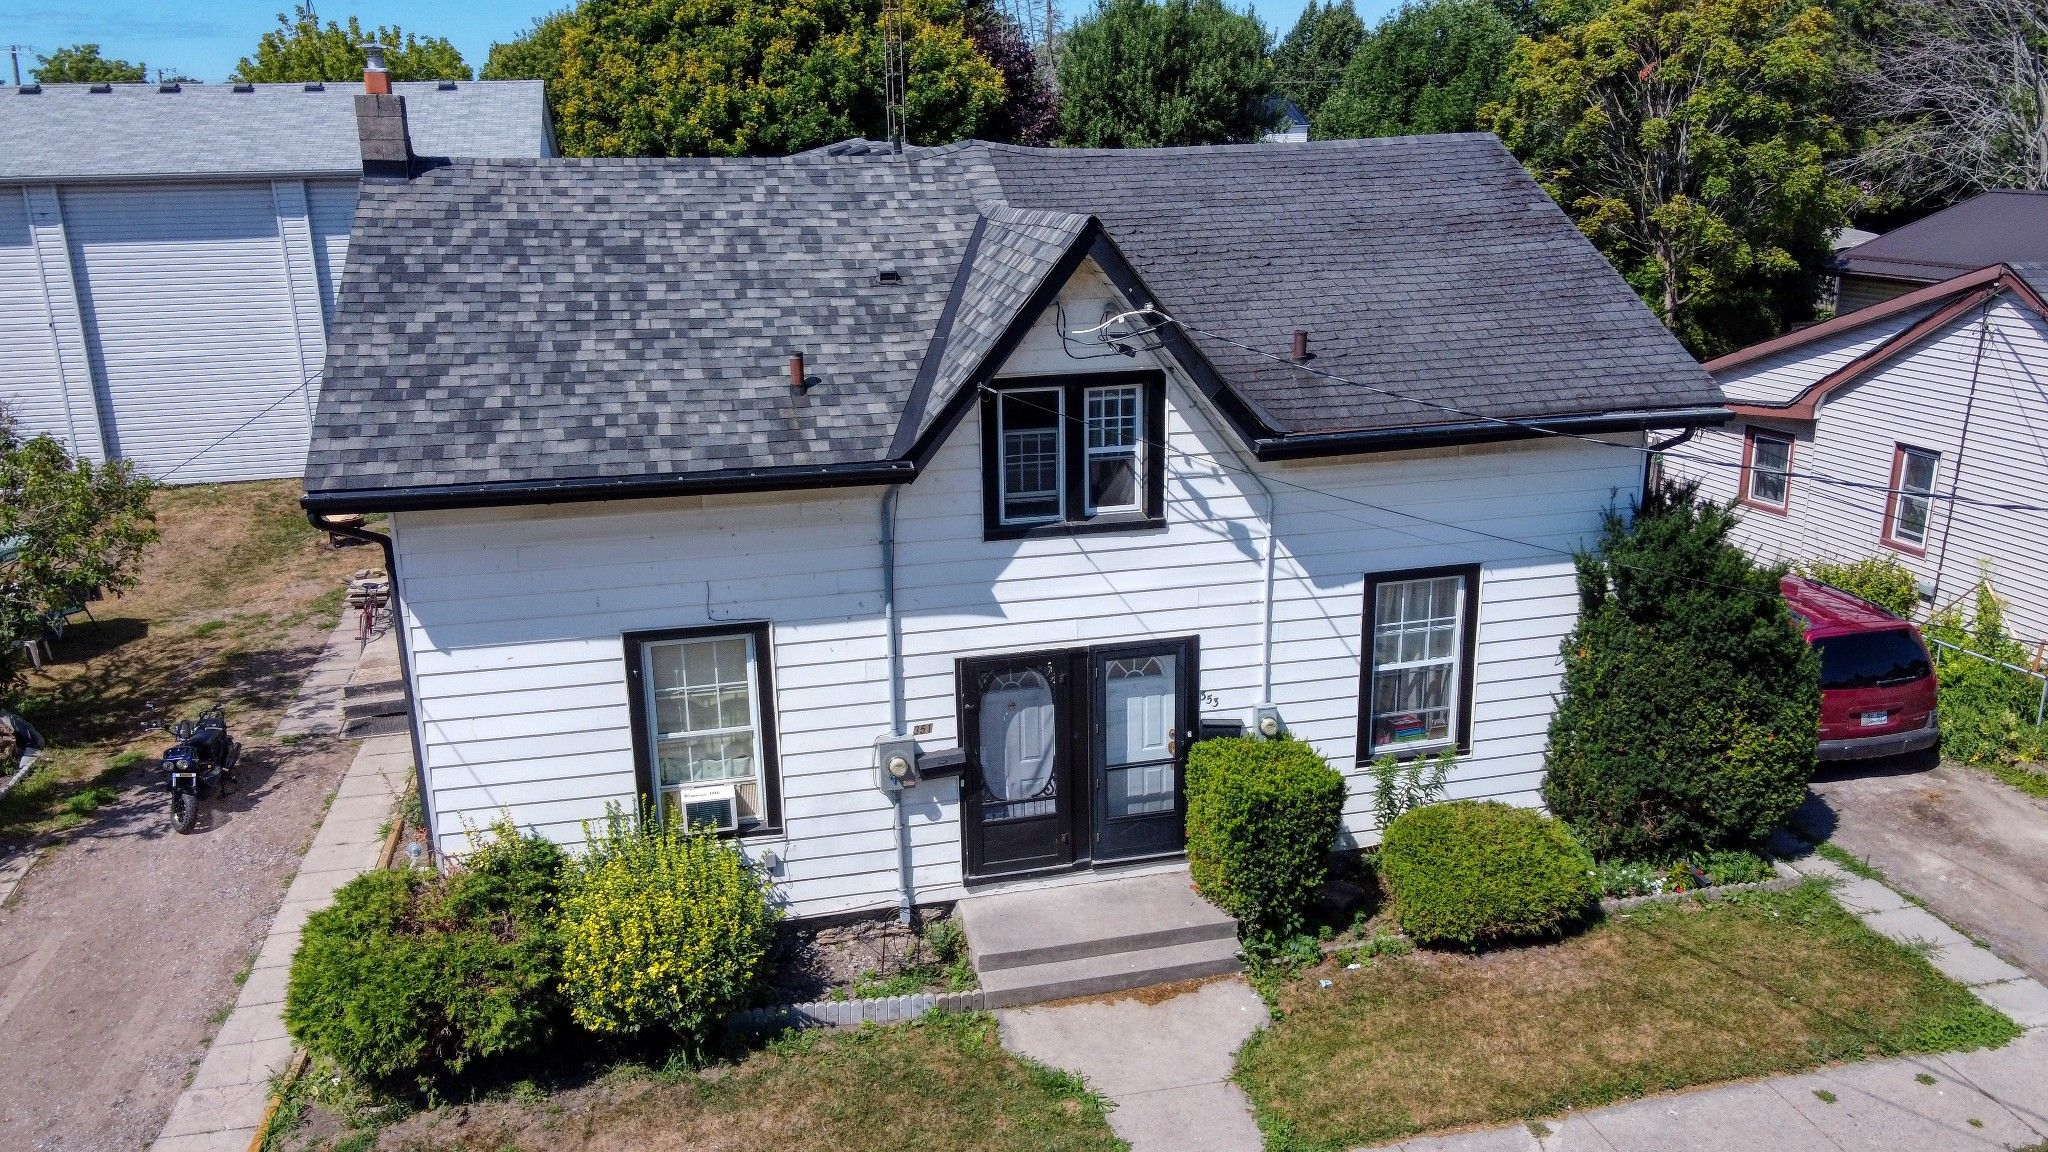 Main Photo: 353 John Street in Cobourg: House for sale : MLS®# X5180944